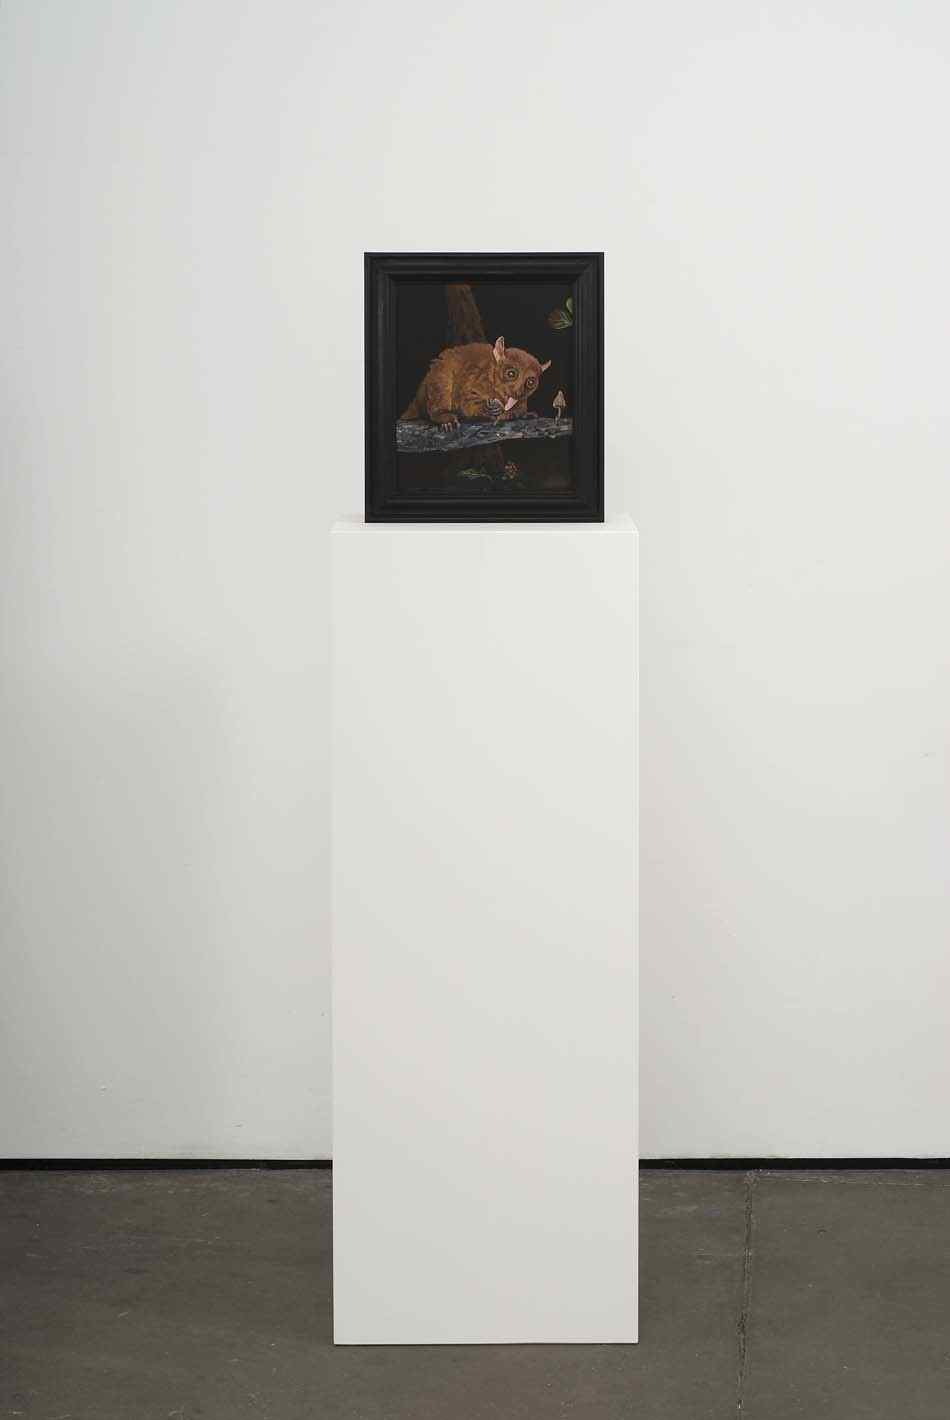 Curiosity Killed the Prosimian 2009 Double-sided acrylic on board in artists frame mounted on pedestal 147.3 x 40 x 28cm